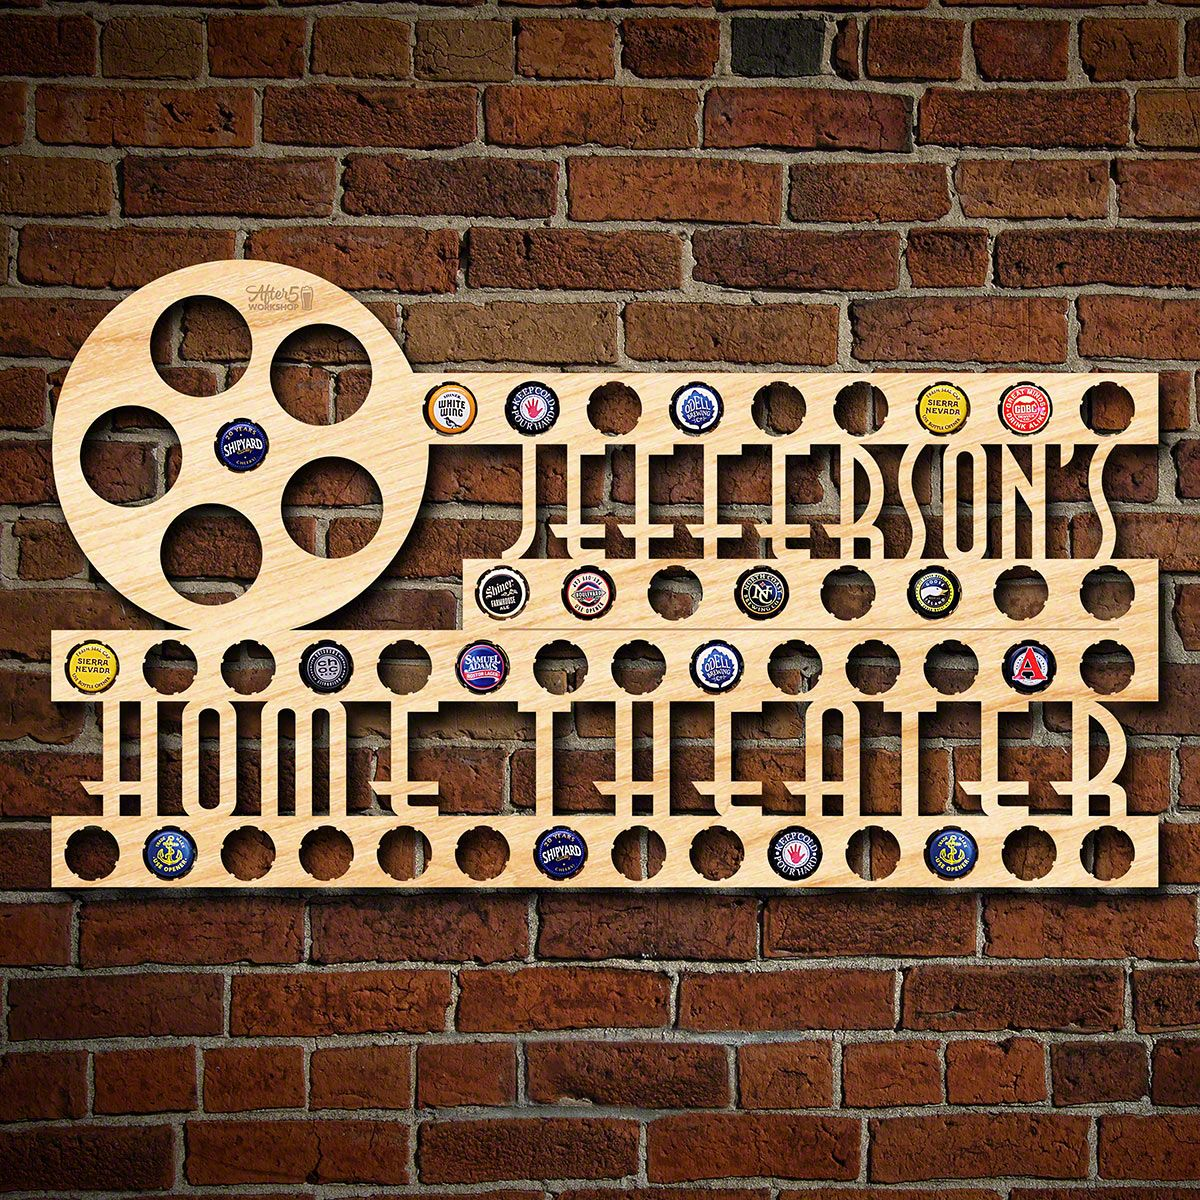 Home Theater Personalized Beer Cap Holder